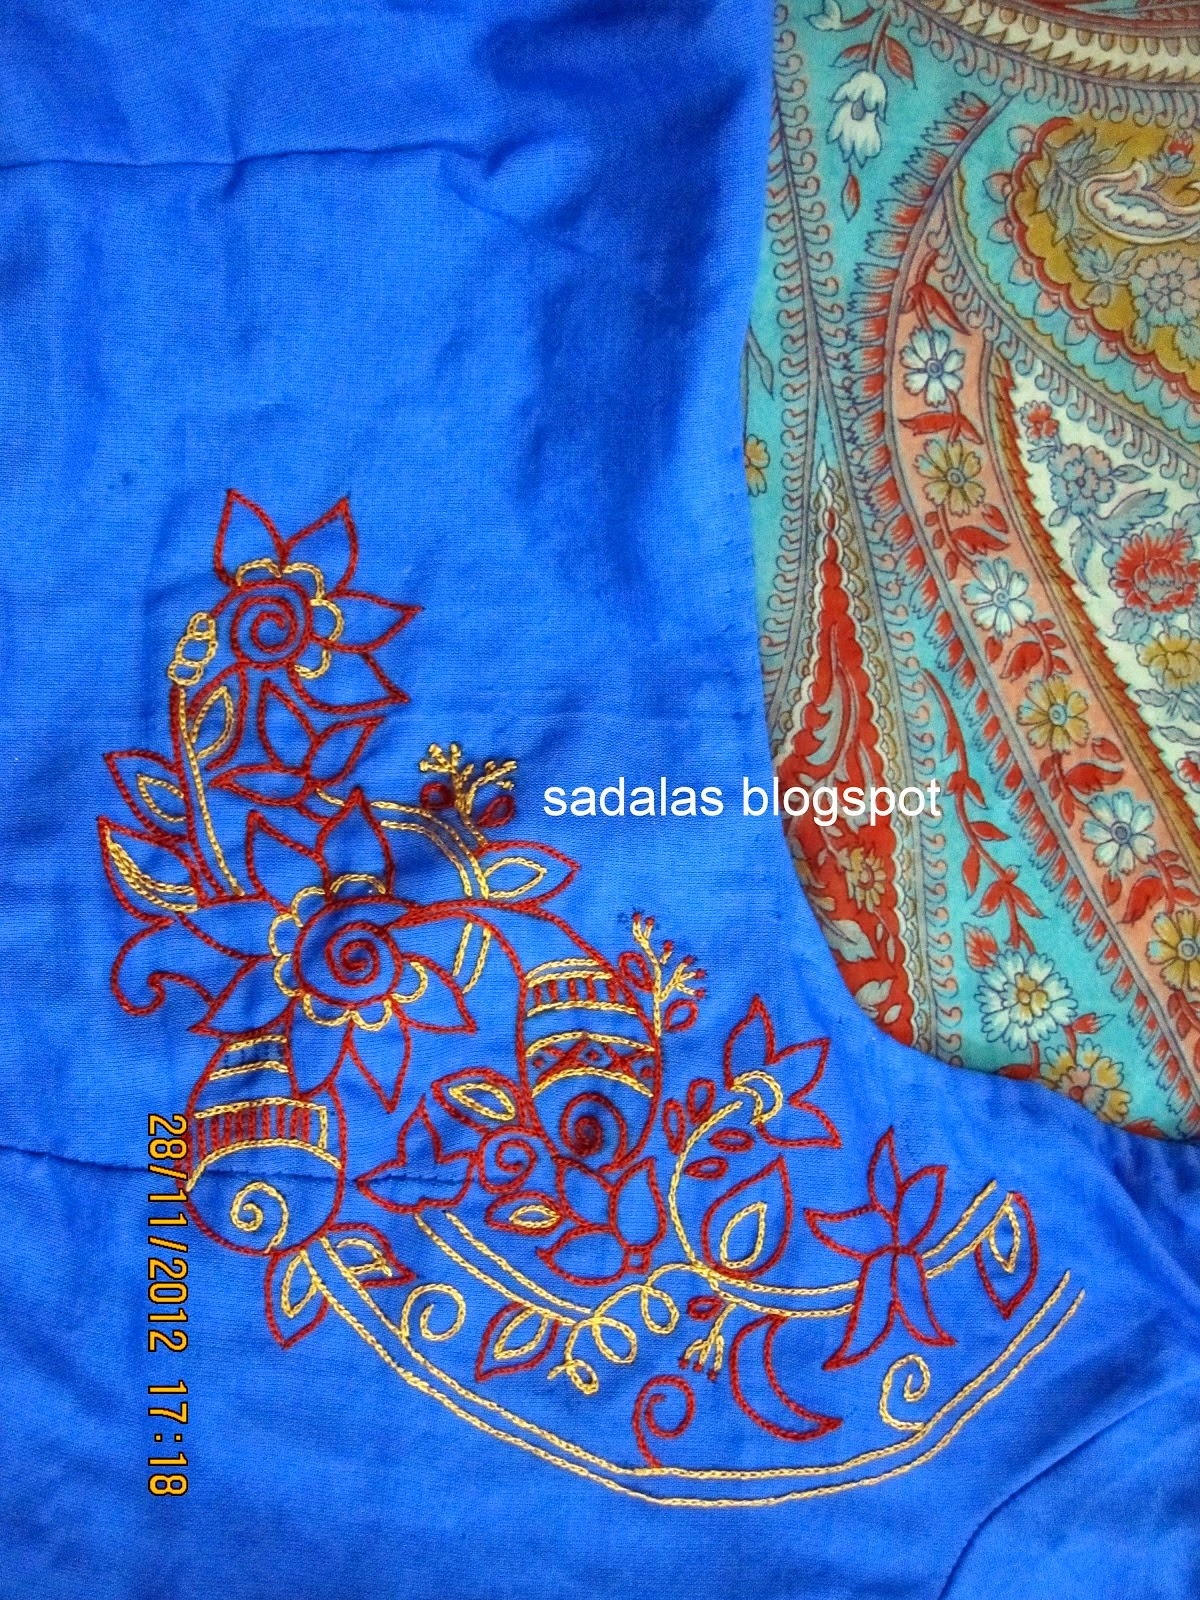 Chain stitch embroidery designs for sarees makaroka sadala39s embroidery chain stitch saree blouse bankloansurffo Images